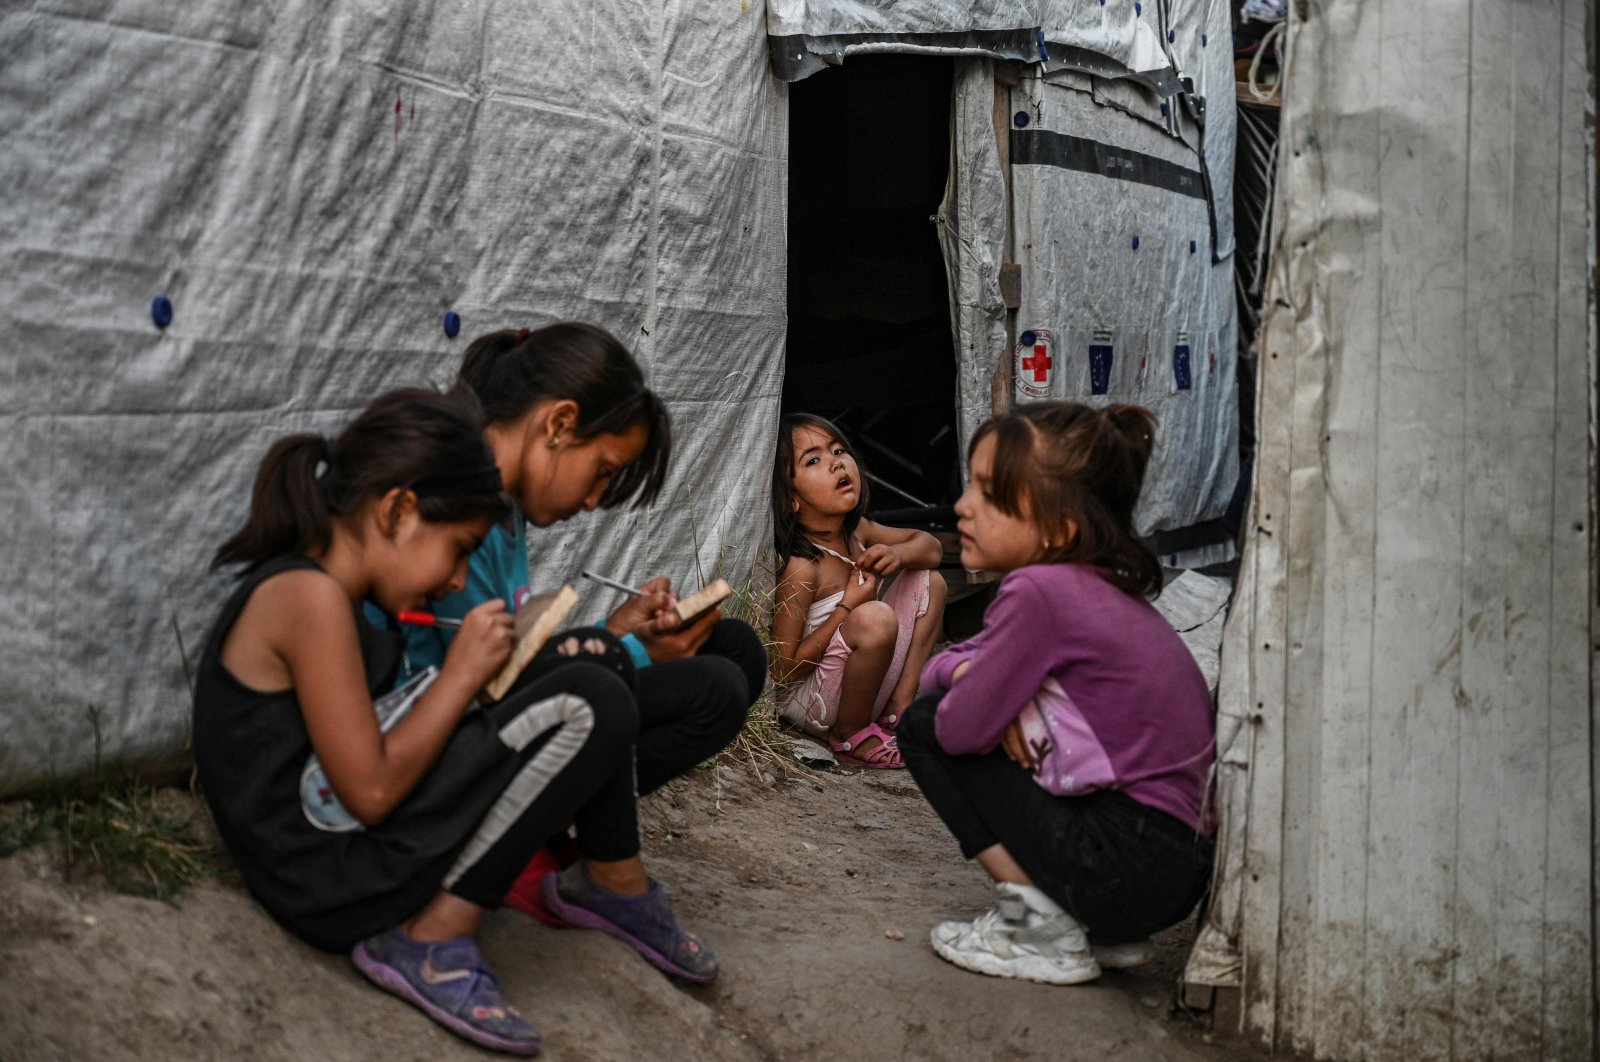 Childs are pictured in a improvised tents camp near the refugee camp of Moria in the island of Lesbos, June 21, 2020. (AFP)